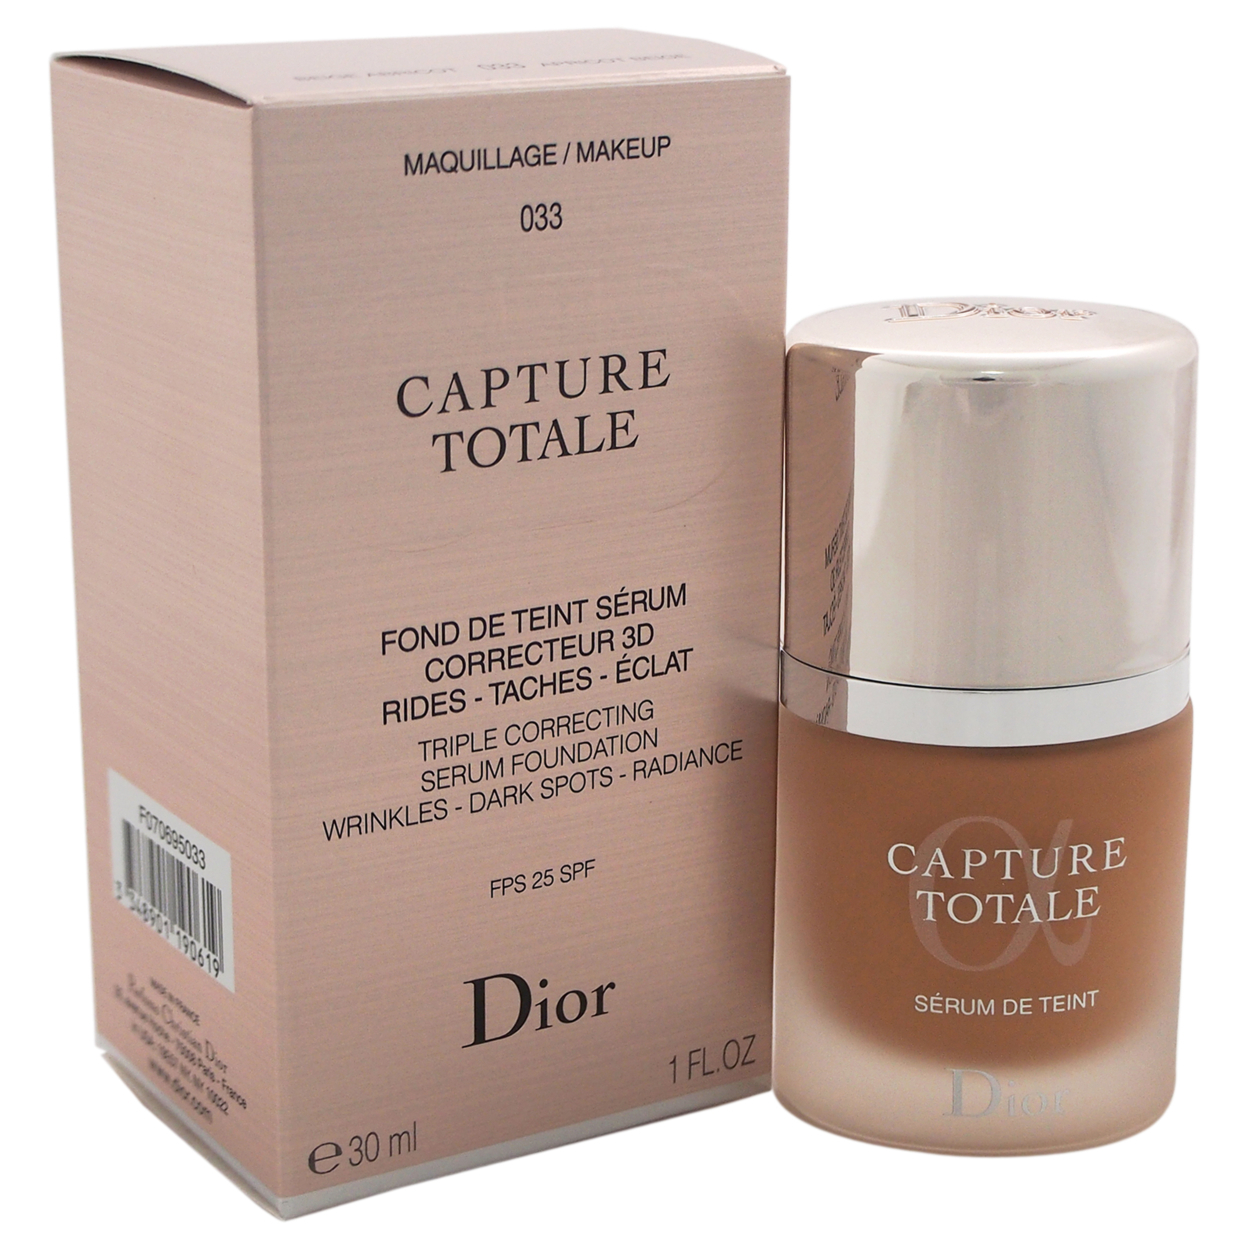 Capture Totale Triple Correcting Serum Foundation SPF 25 - # 033 Apricot Beige by Christian Dior for Women - 1 oz Foundation 58c5a9be2a00e43342572b22